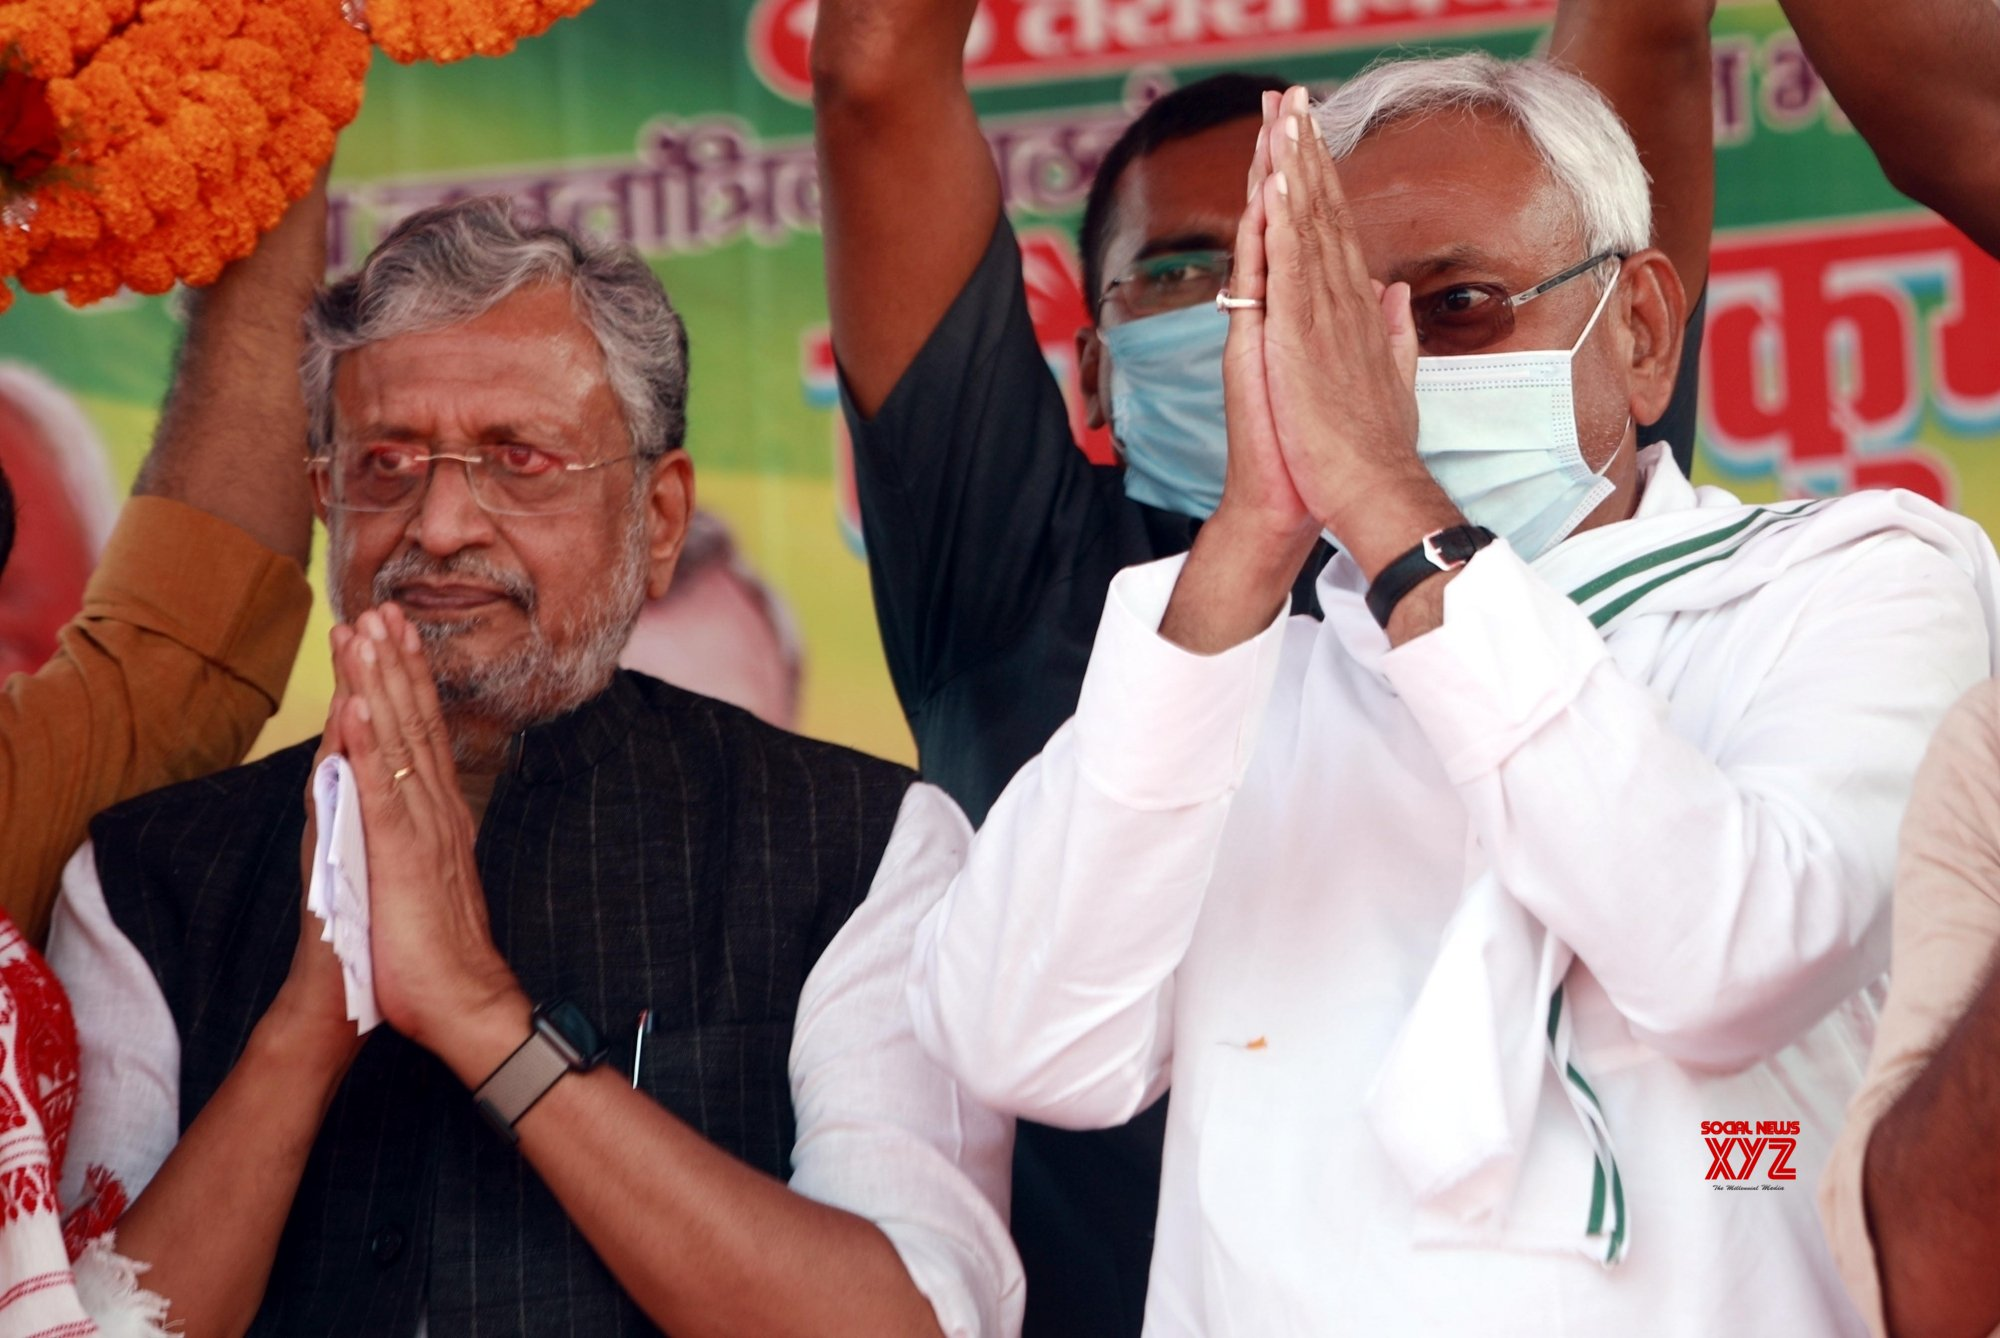 Bhojpur: Nitish Kumar with Susheel Kumar Modi being garland by supporters during an election meeting #Gallery